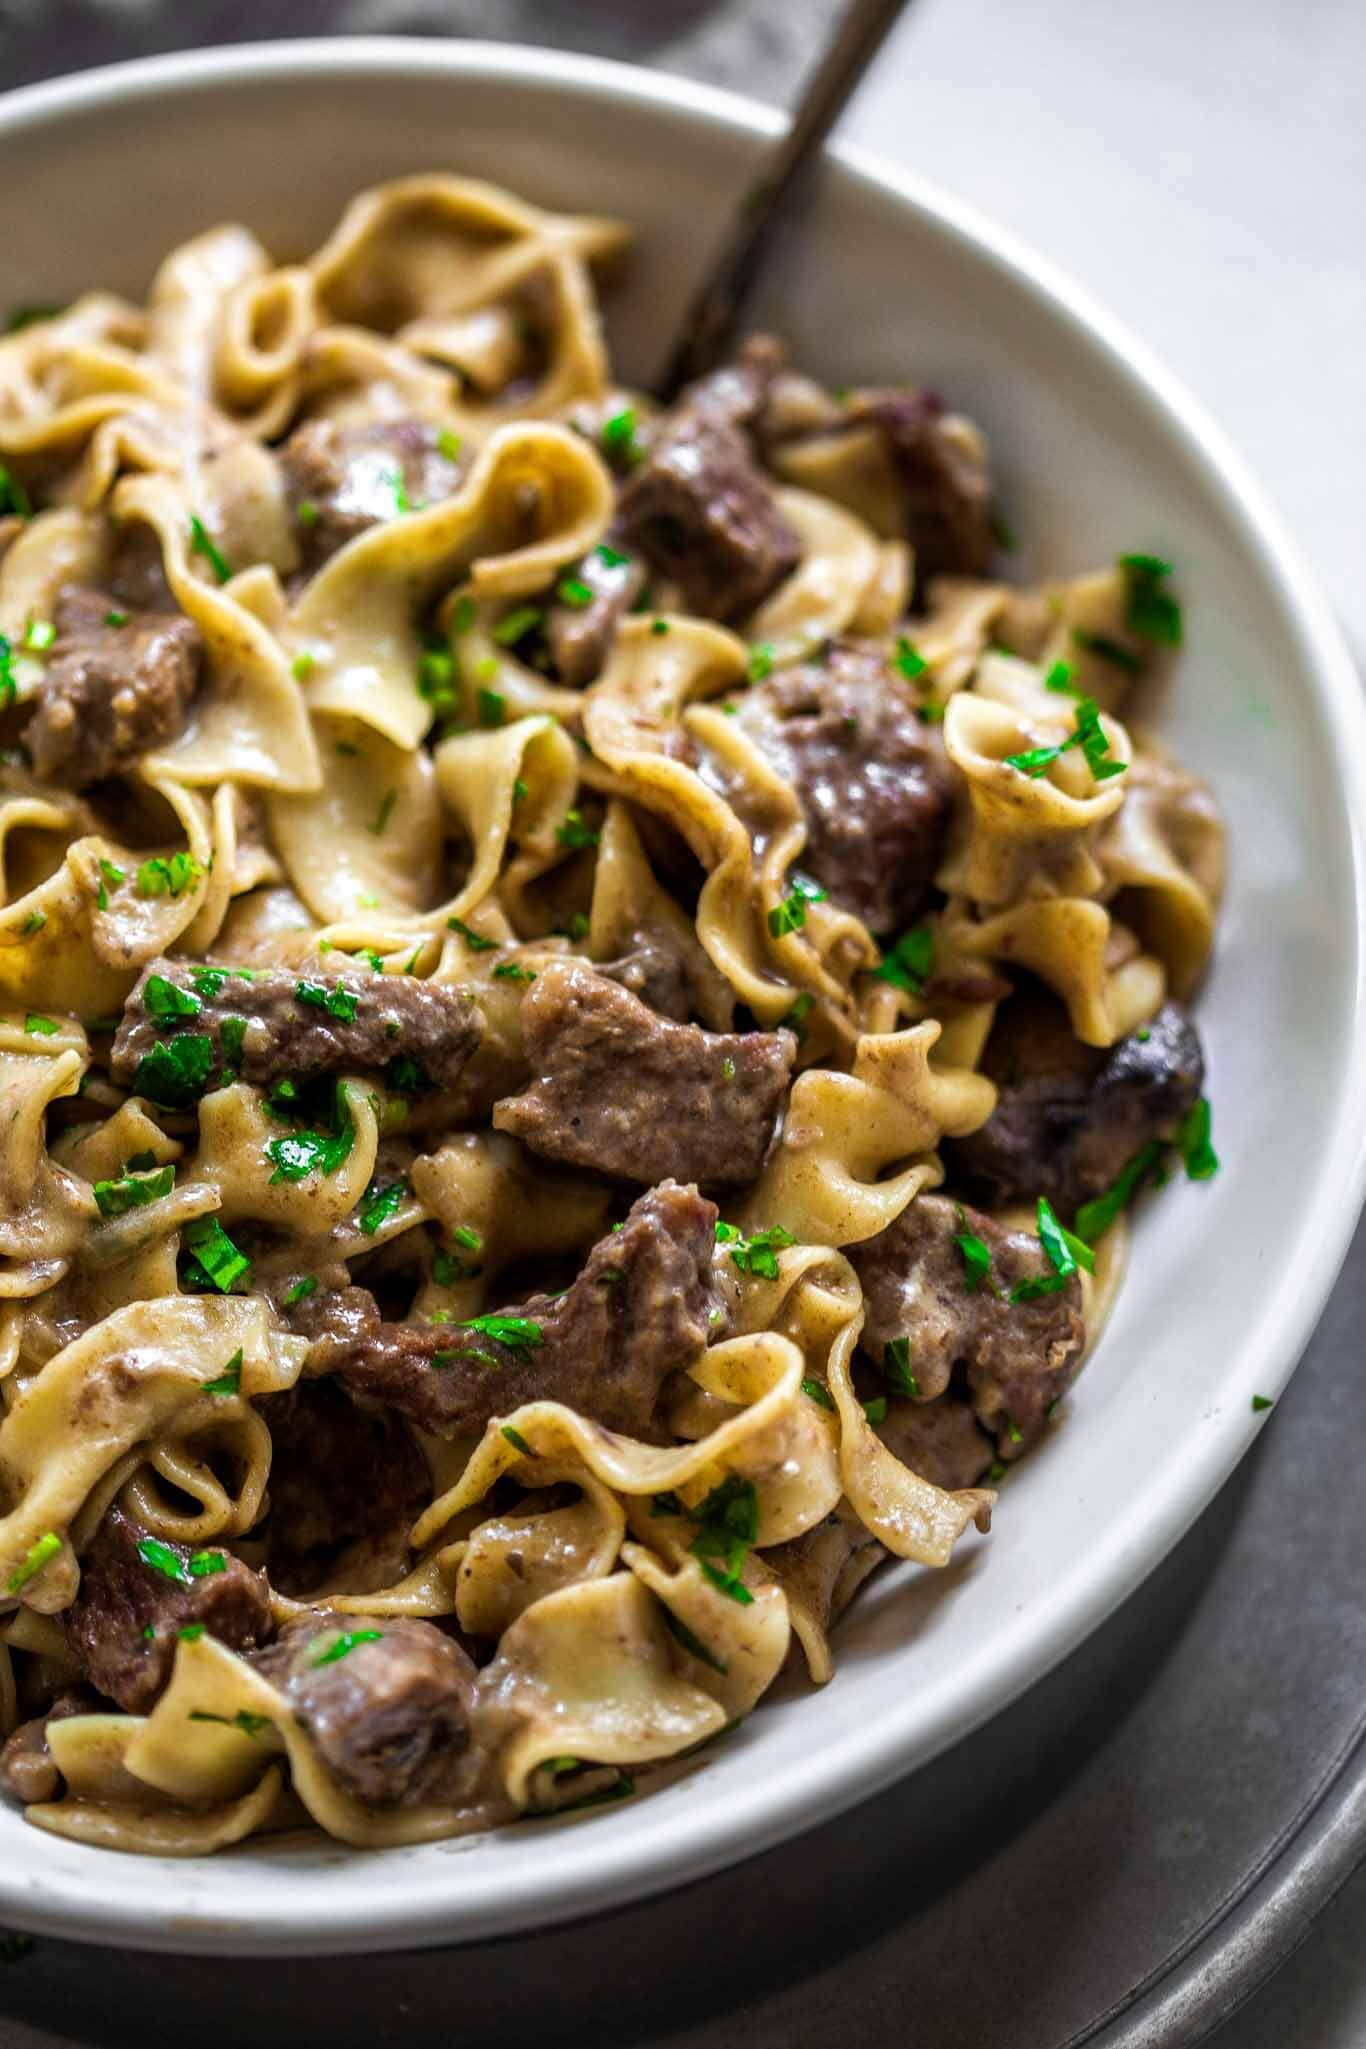 This Instant Pot Beef Stroganoff Recipe Results In The Most Tender Beef In A Saucy Cre Beef Recipes Easy Beef Stroganoff Instant Pot Recipe Stroganoff Recipe